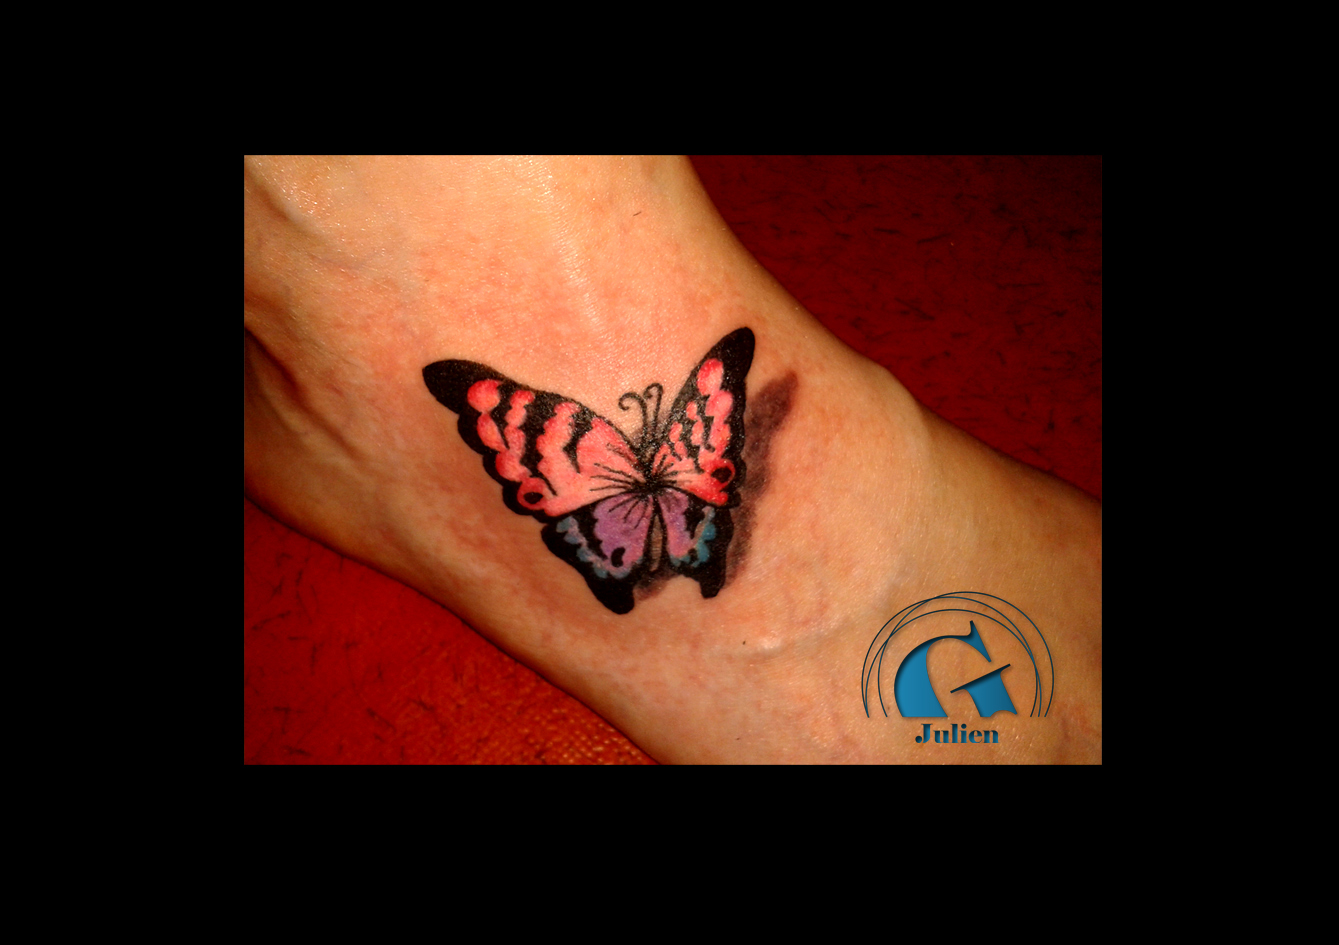 Image tatouage papillon fashion designs - Tatouage papillon de nuit ...